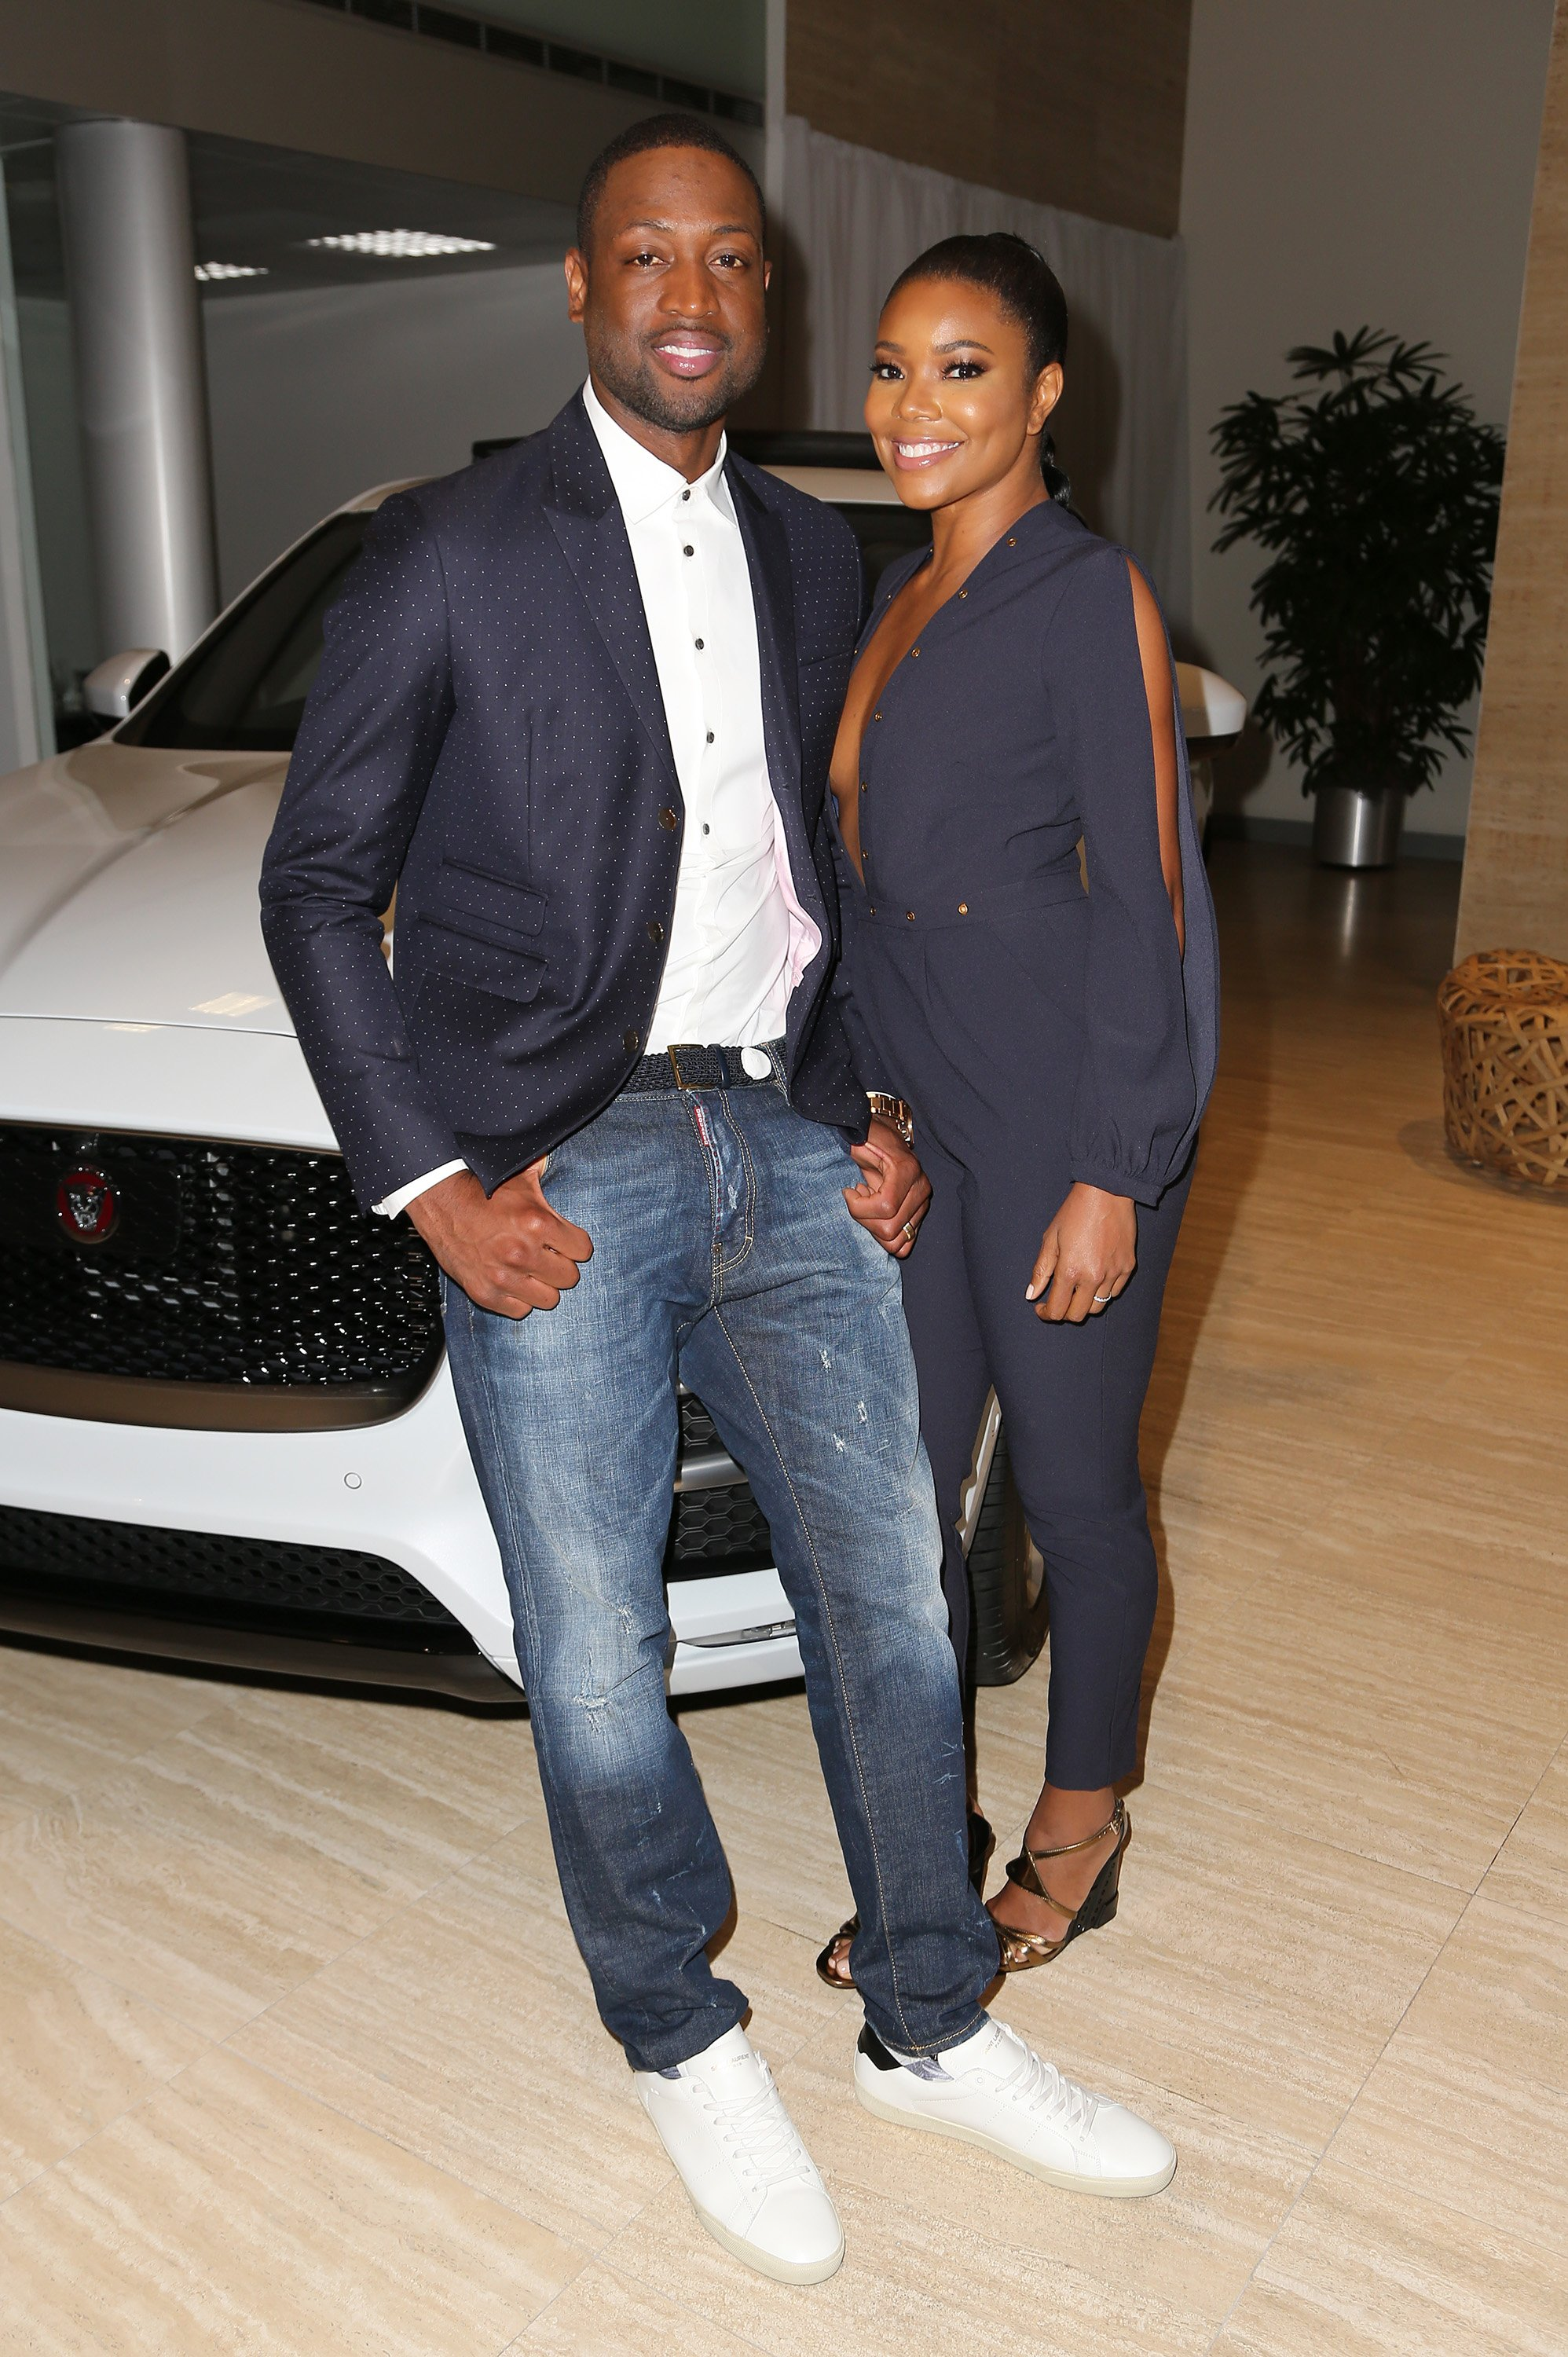 Source: Getty Images l Dwyane Wade and Gabrielle Union at Dwyane Wade's new car launch at The Collection on June 15, 2016